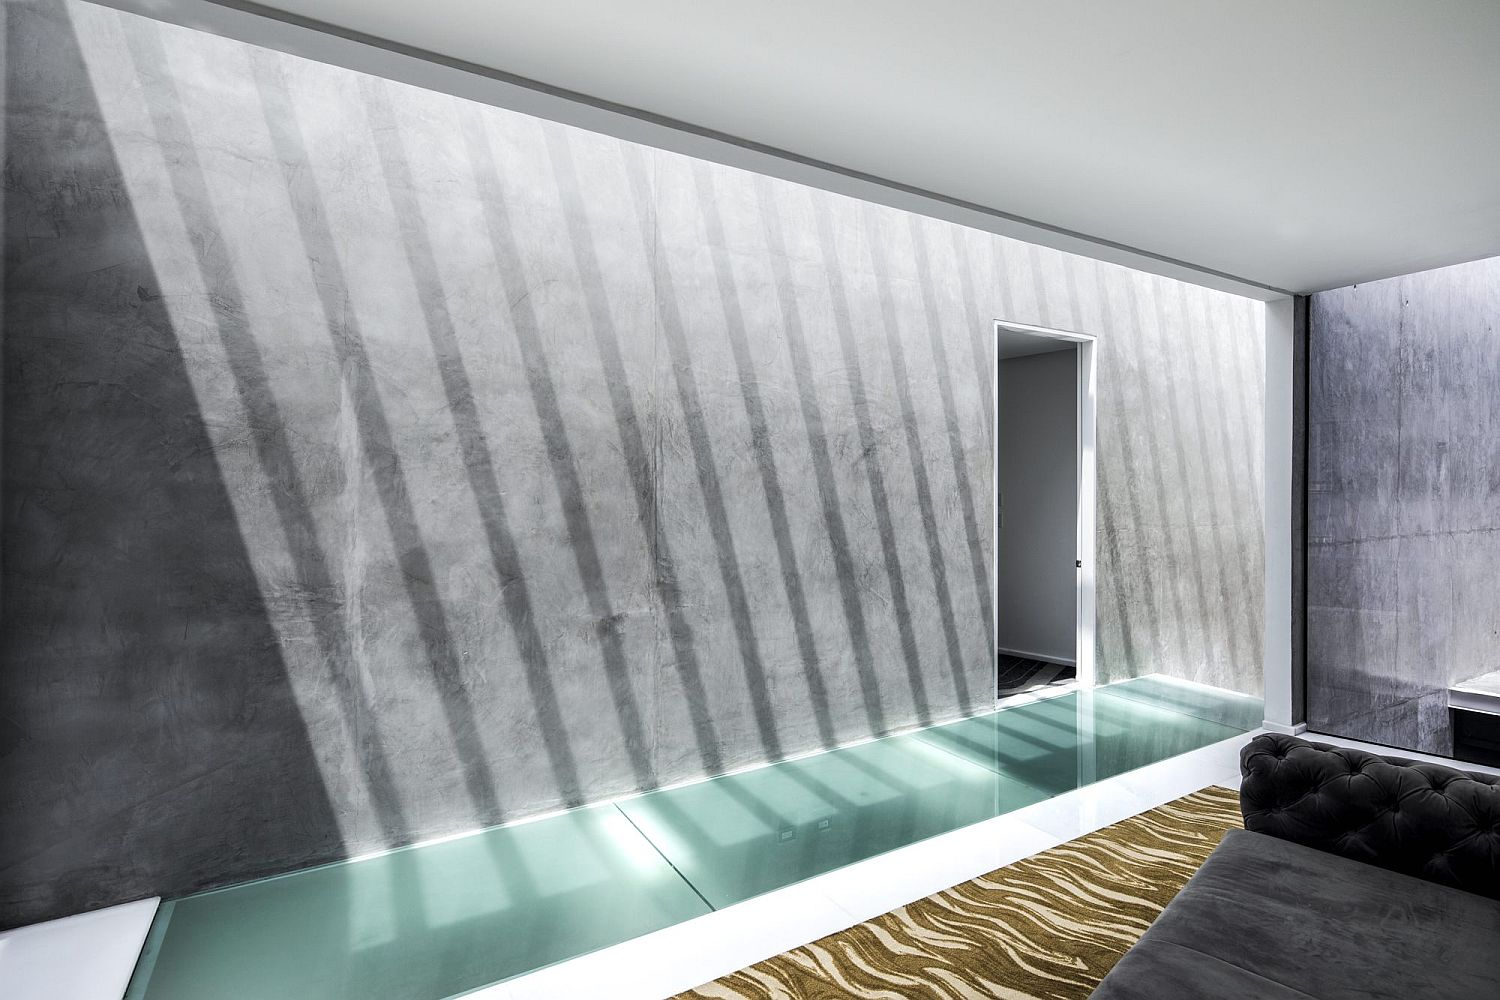 Exposed-concrete-finishes-give-the-interior-a-stoic-minimal-look